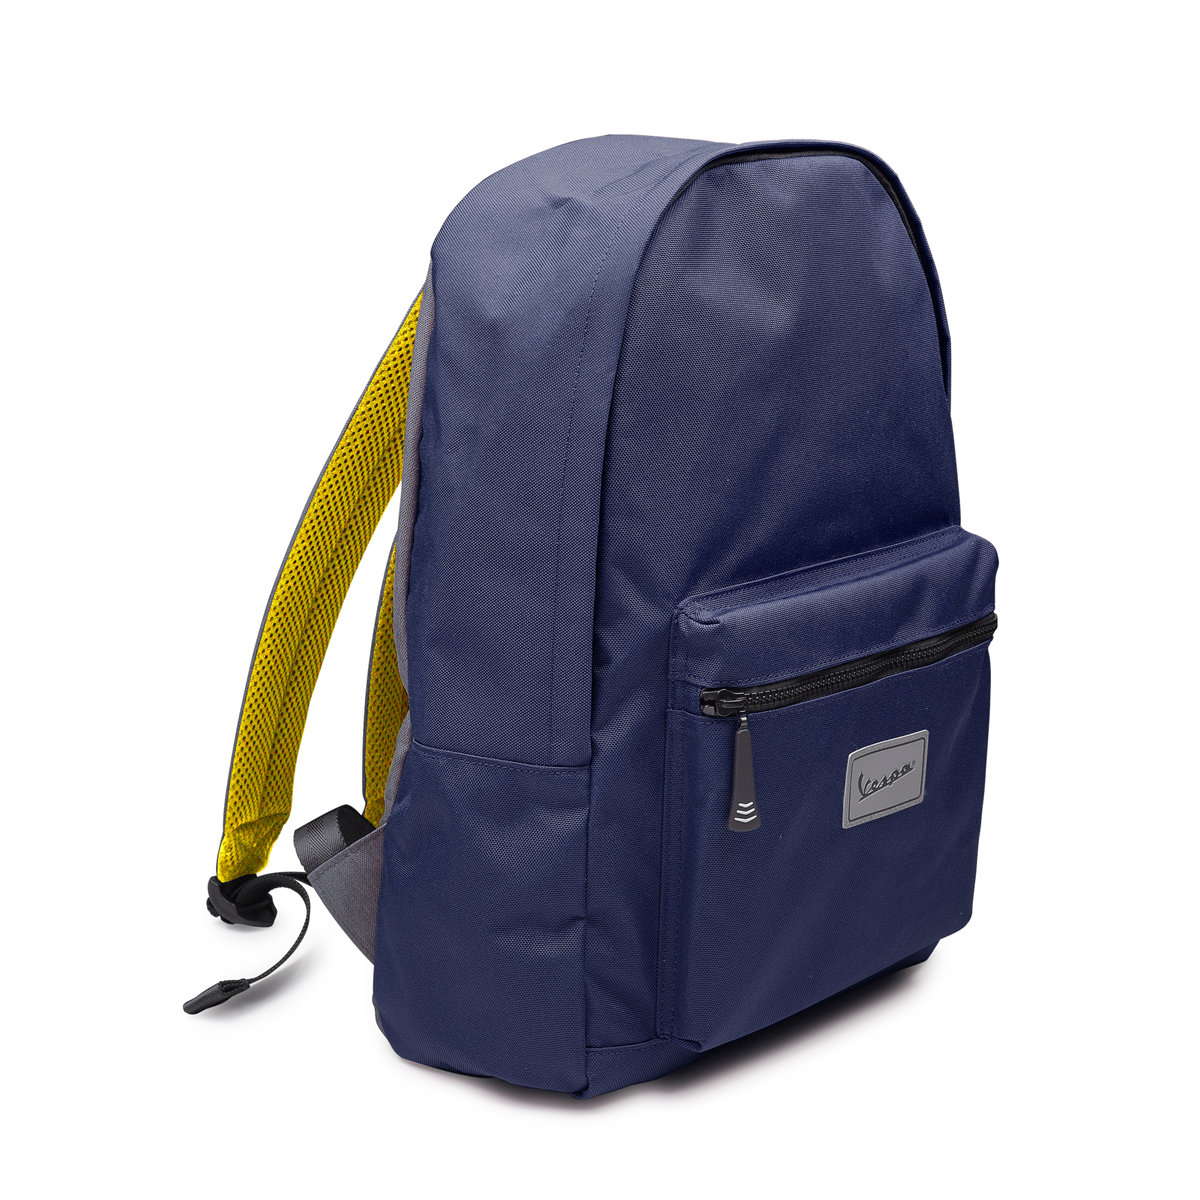 VESPA BACKPACK - CLAXON